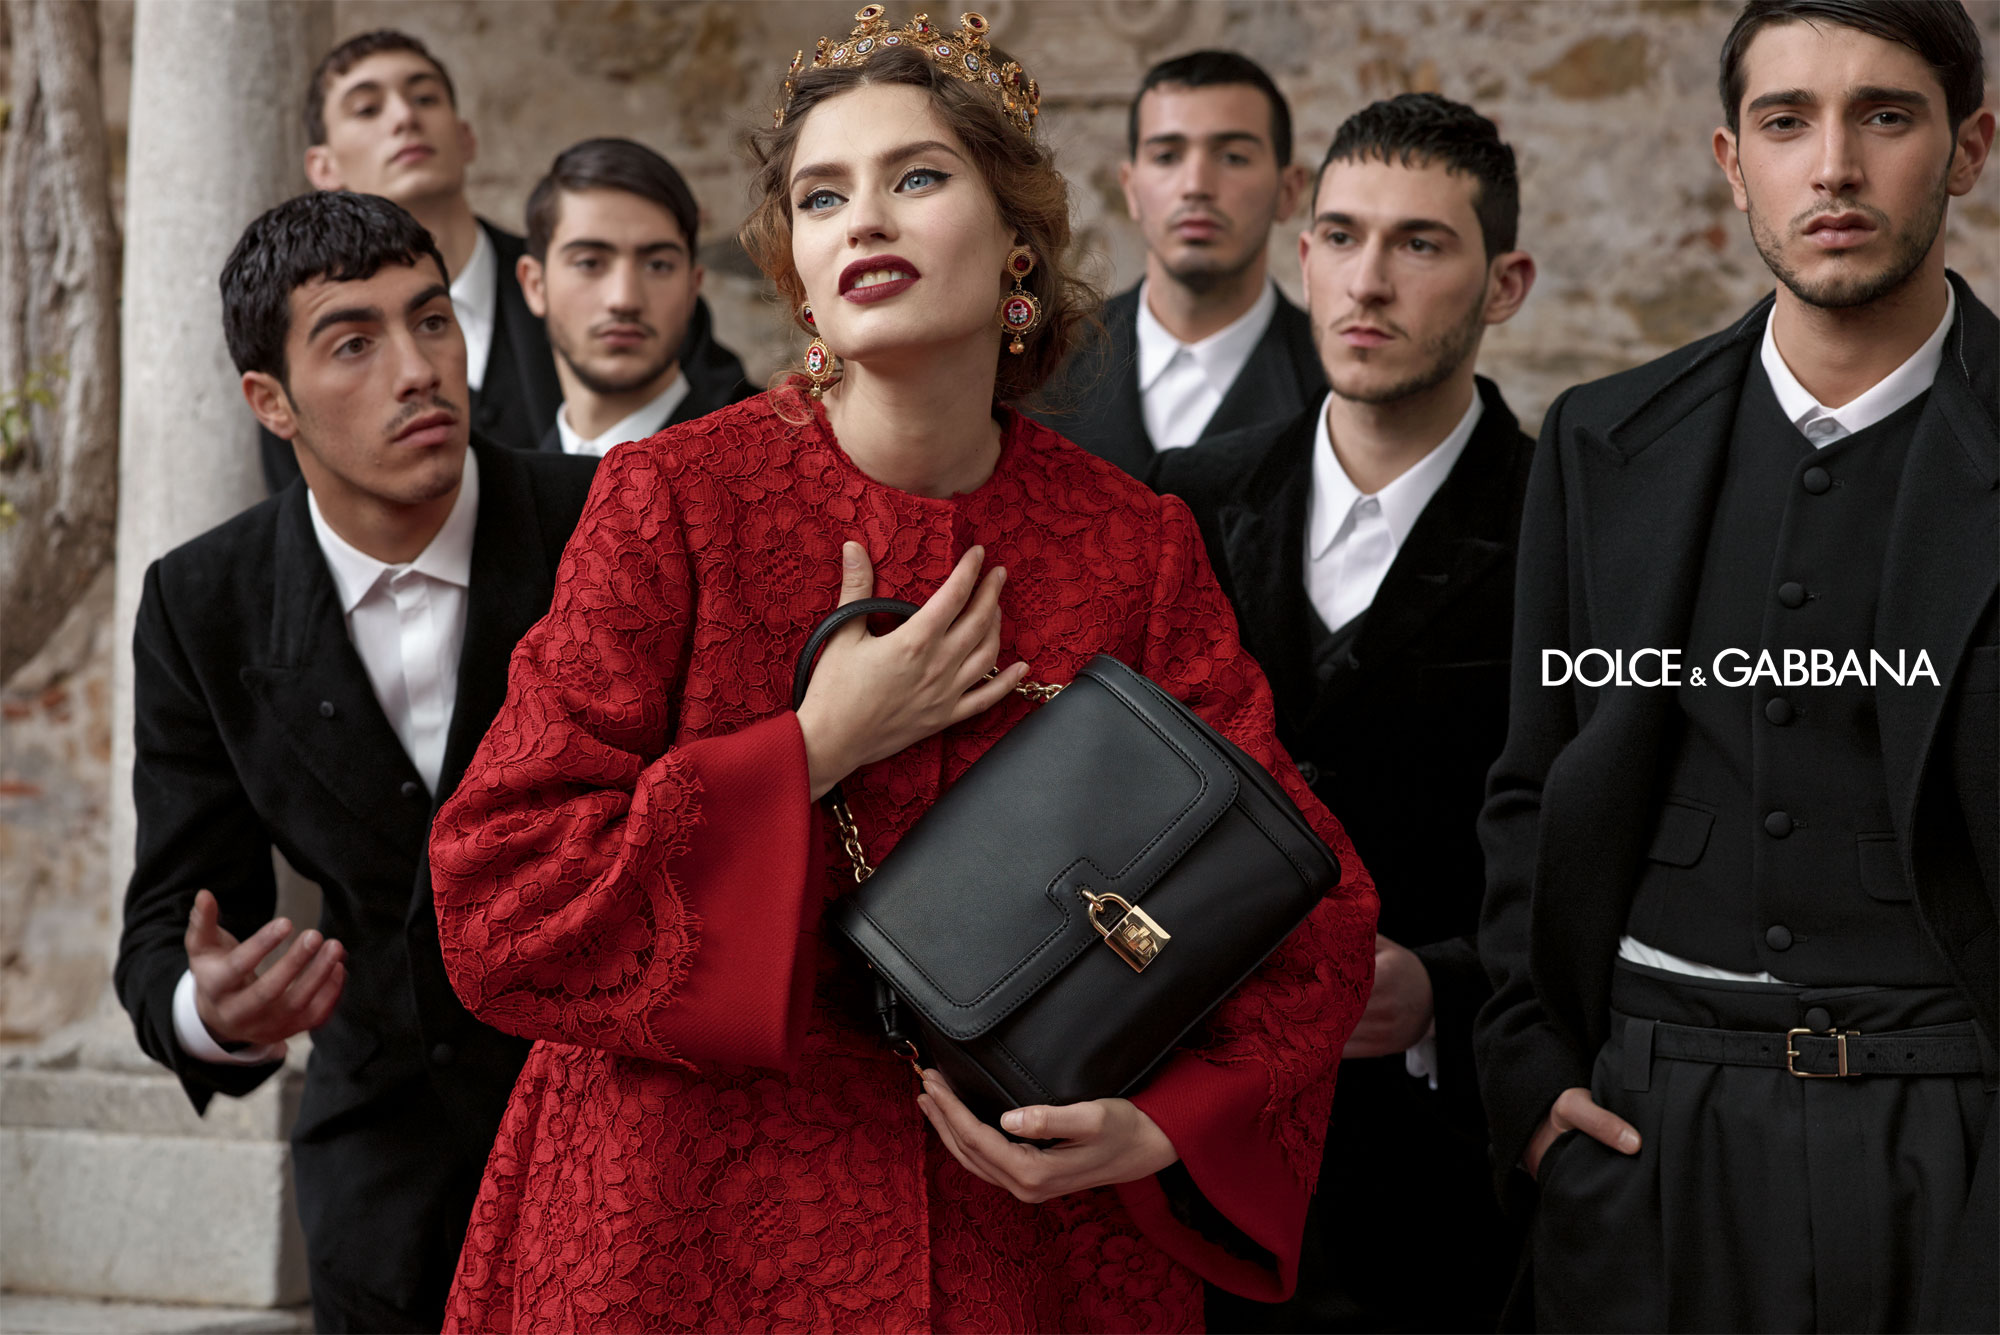 Dolce And Gabbana Fw 2014 Women Adv Campaign 12